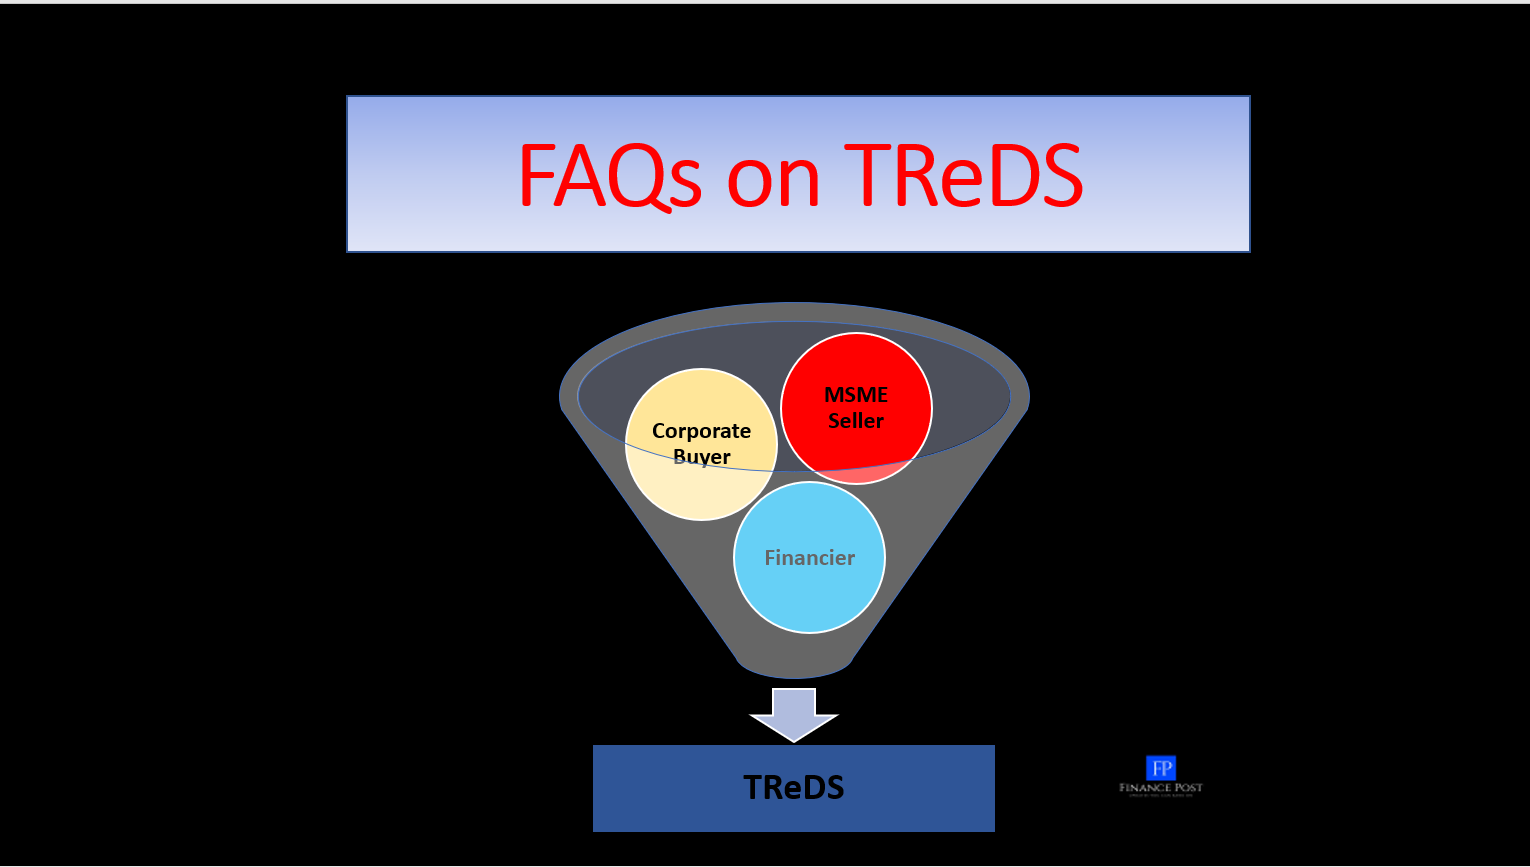 faqs on TReDS